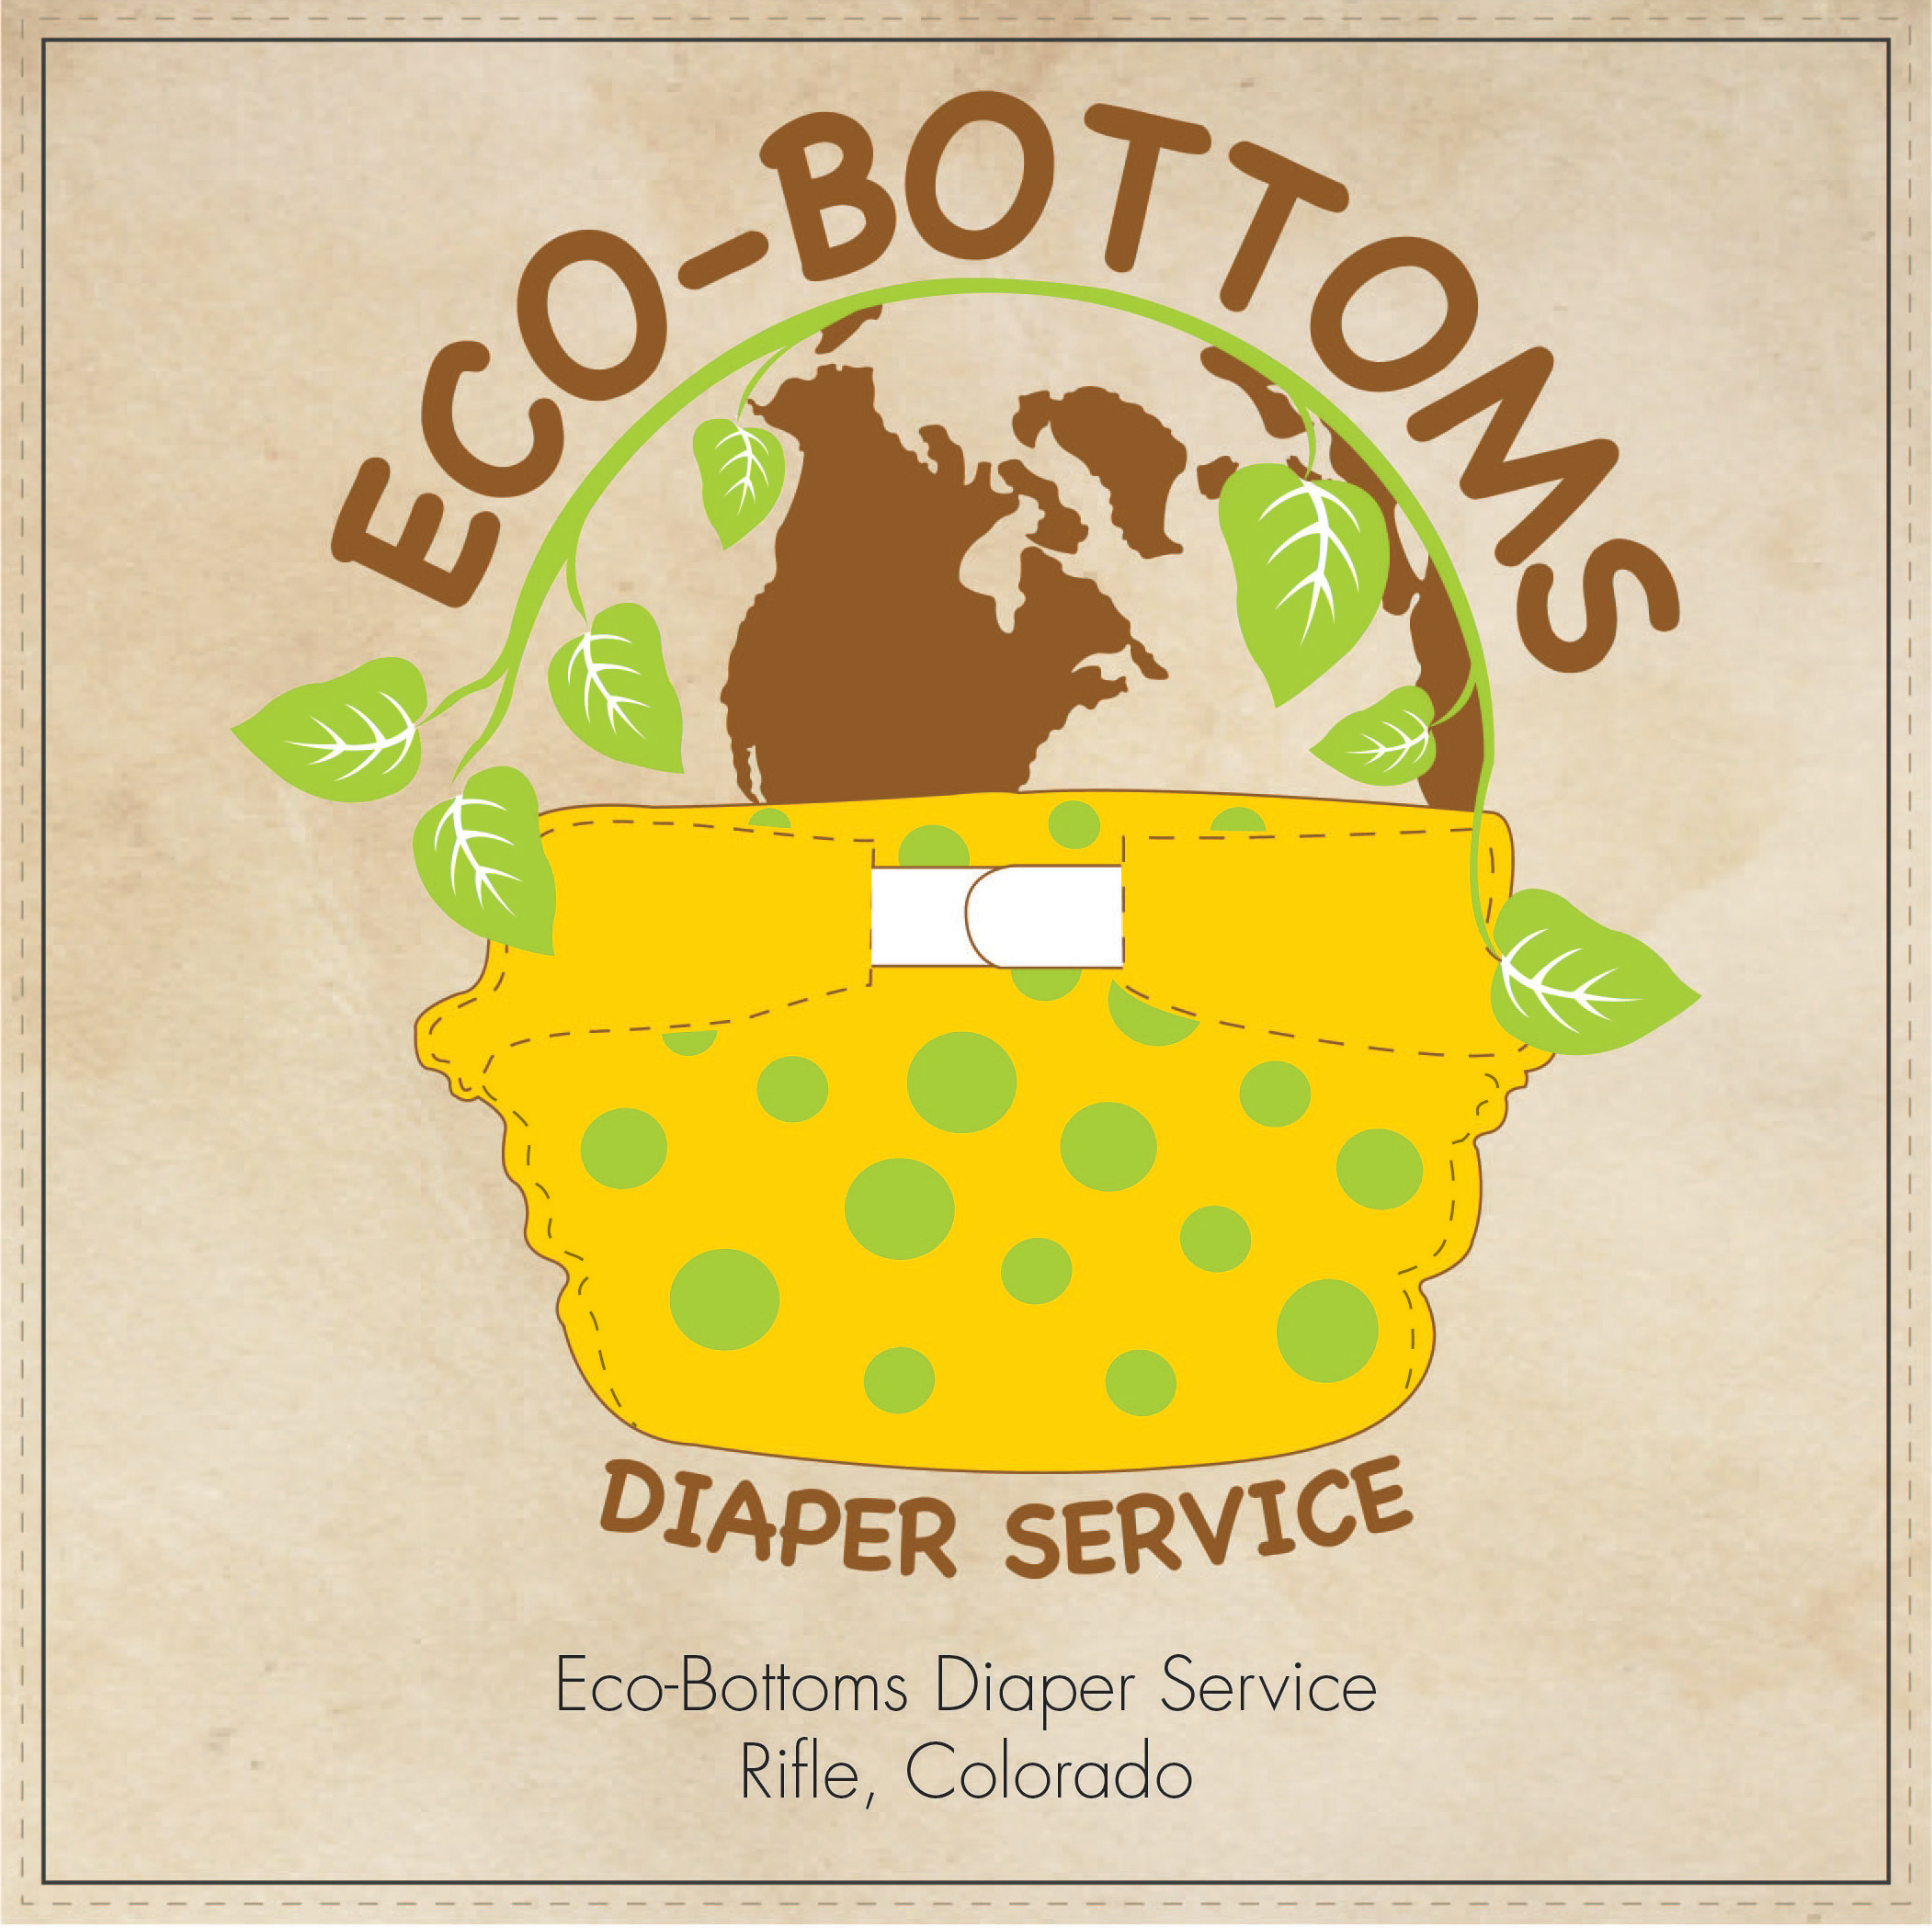 Eco-Bottoms